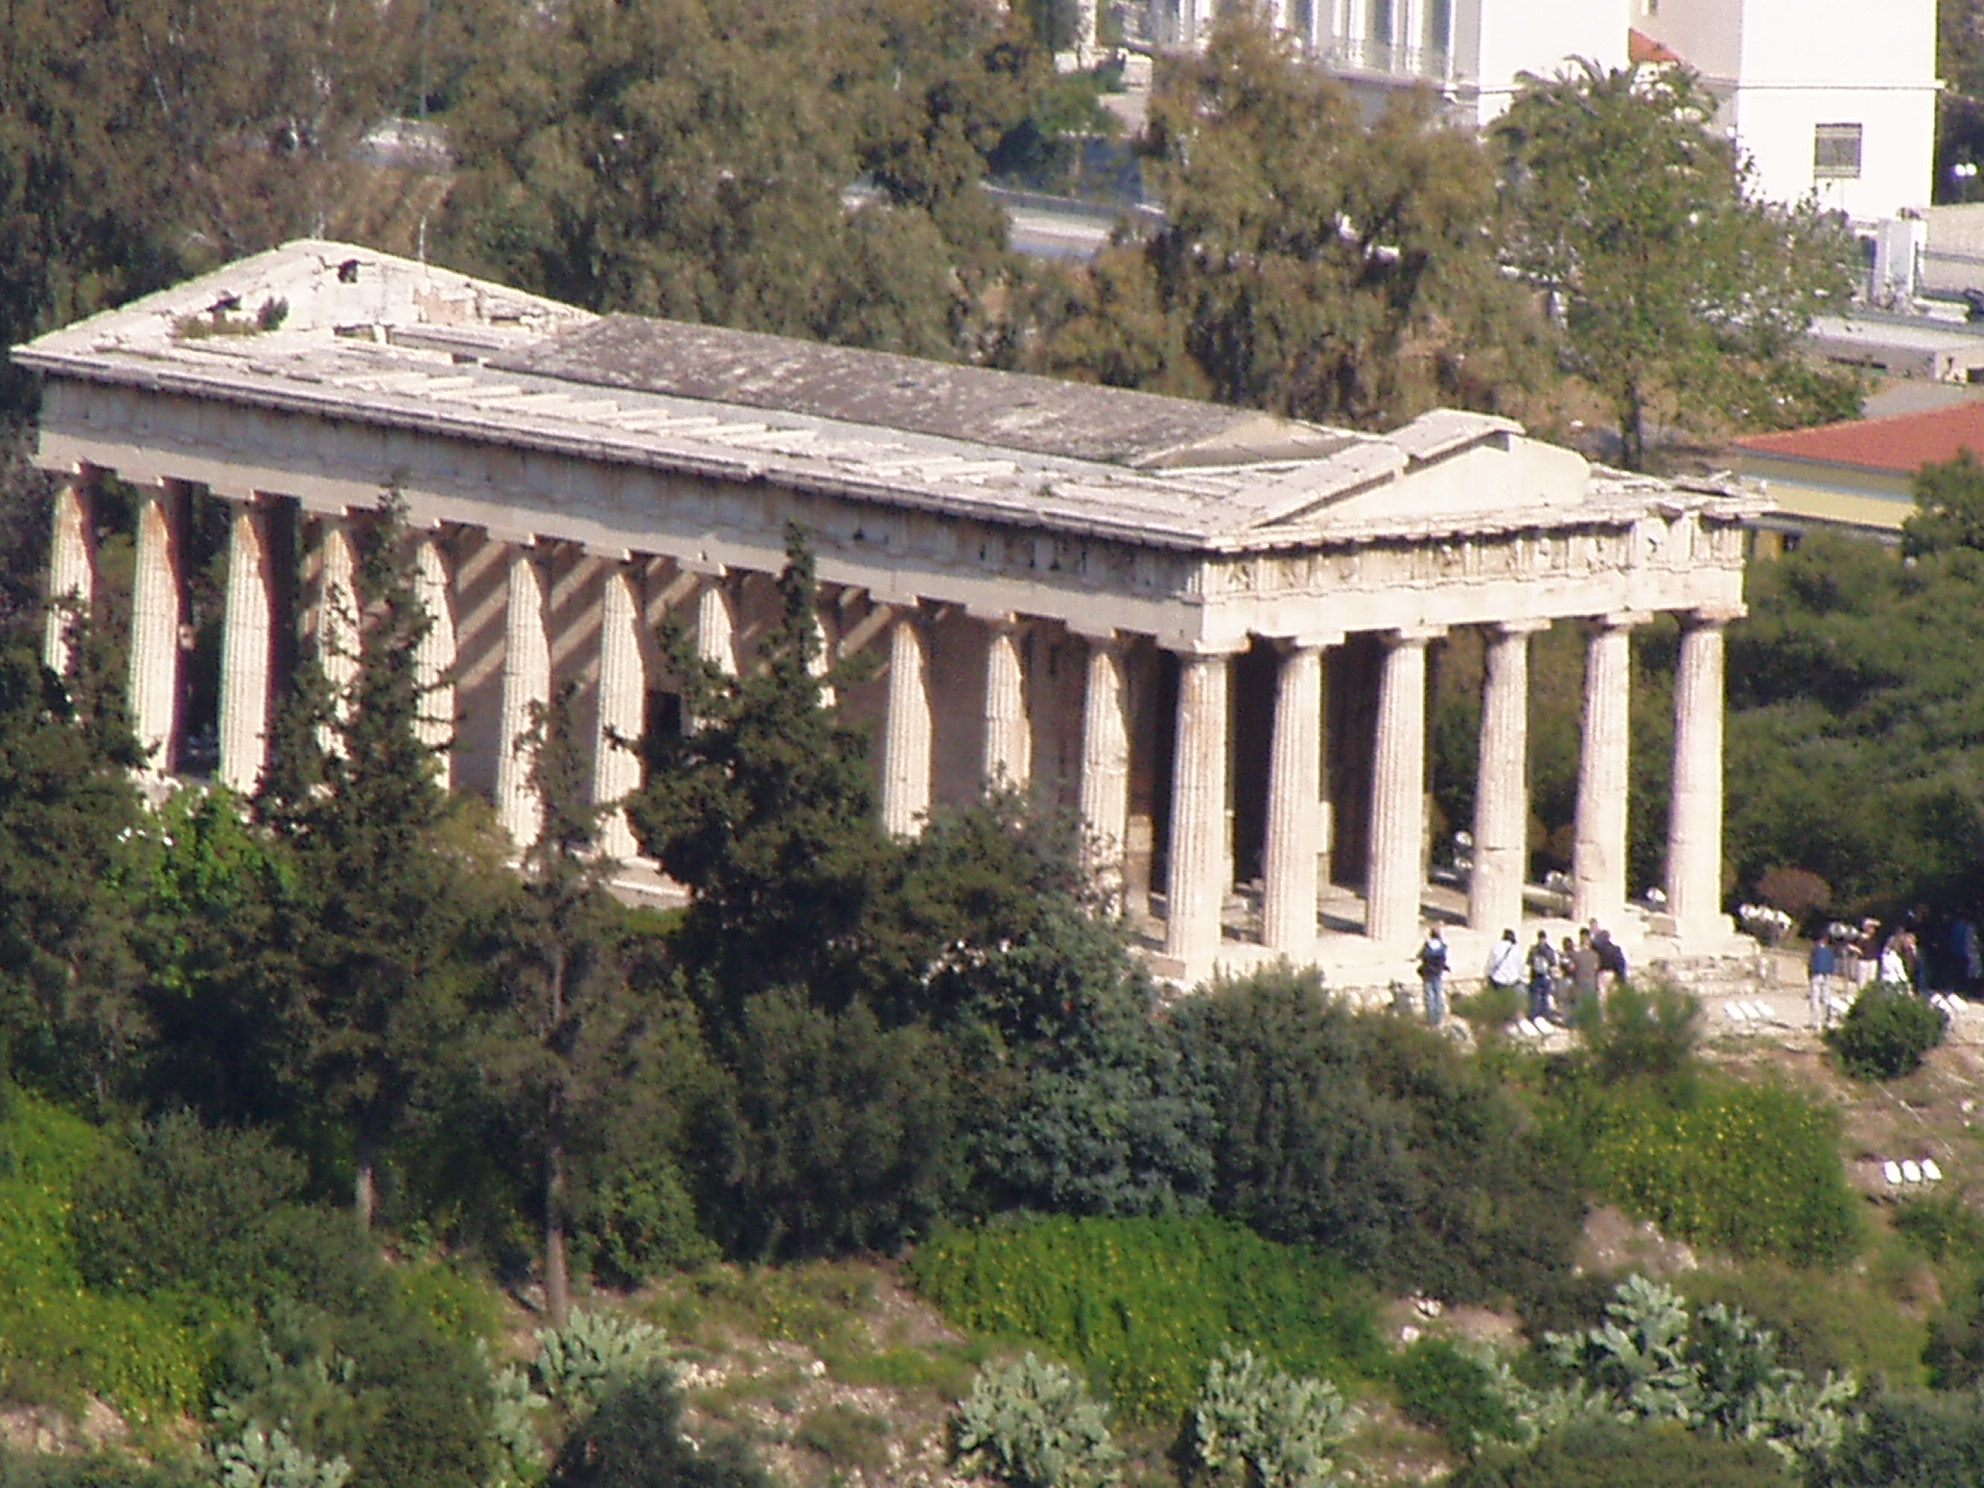 File:Temple of Hephaestus in Athens.jpg - Wikimedia Commons